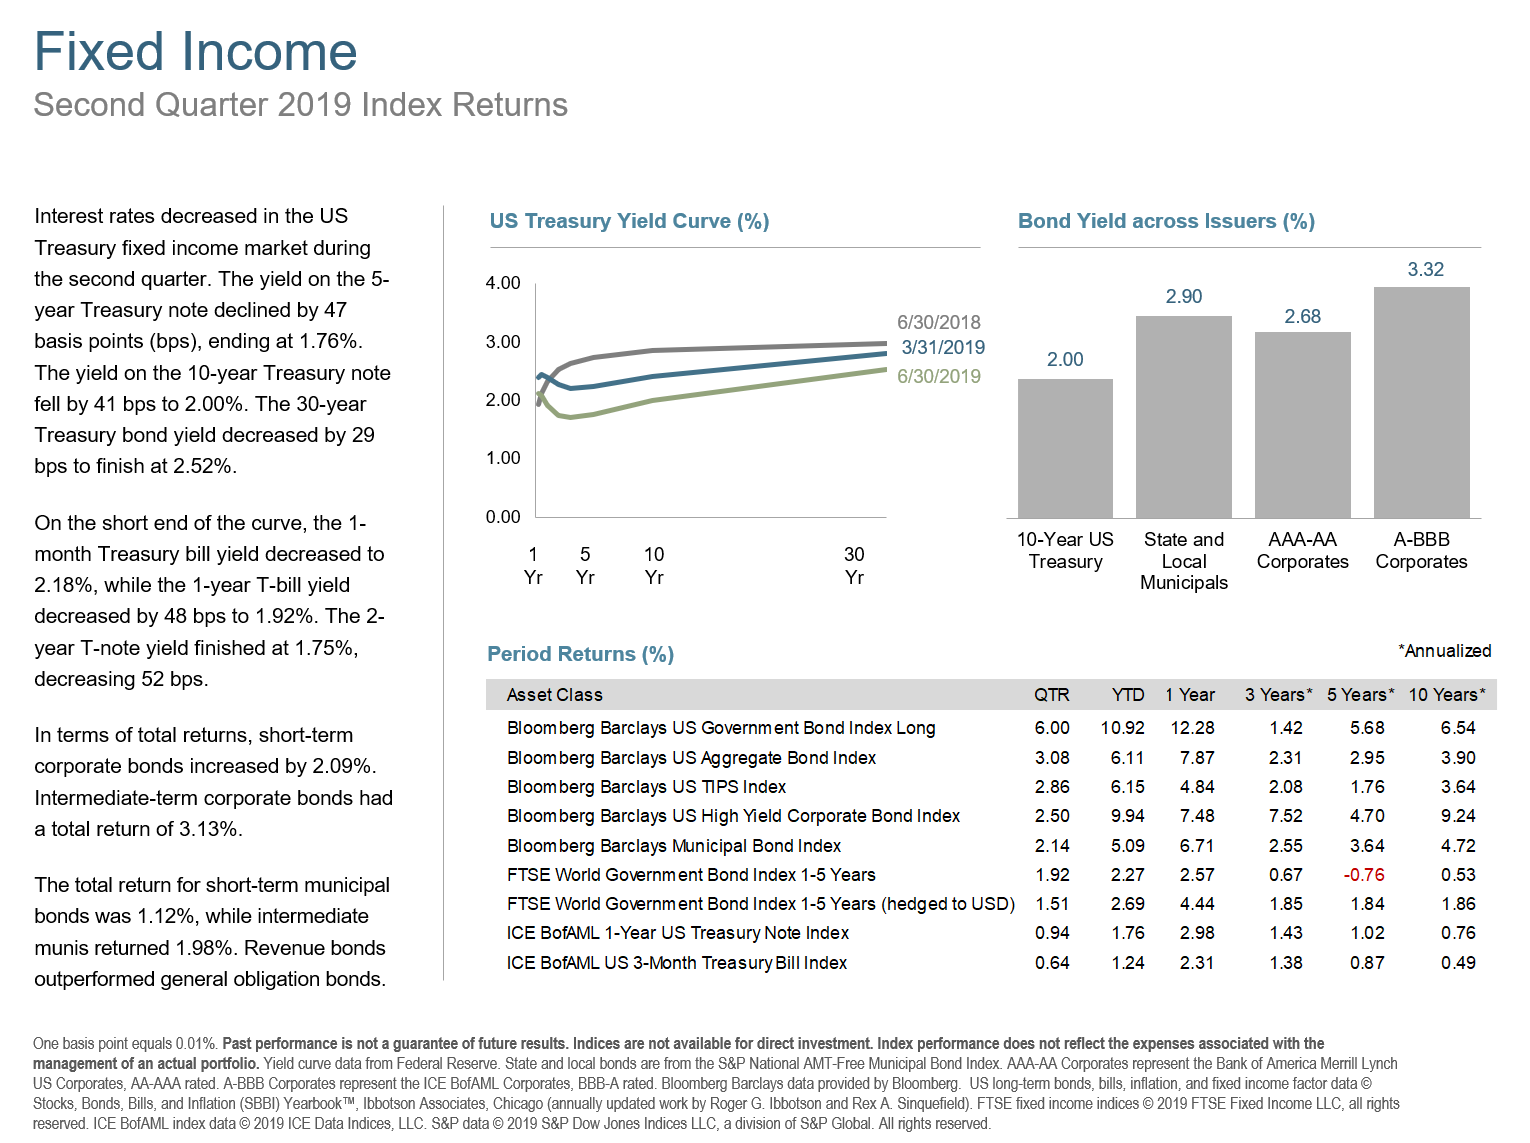 Q2 2019 Fixed Income